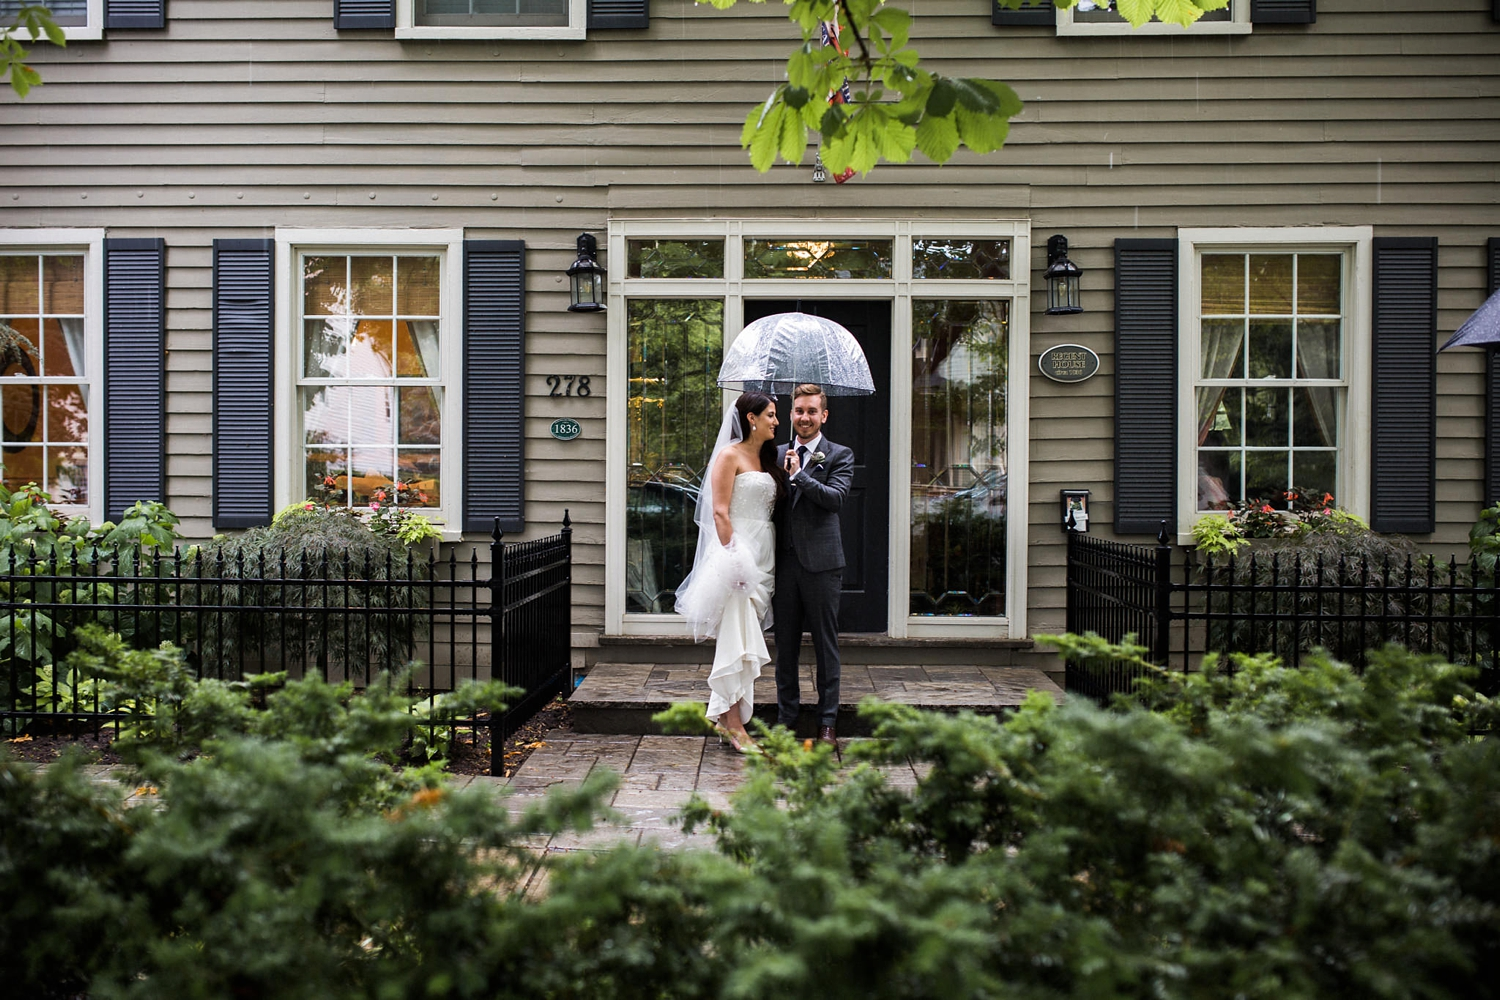 Kurtz-orchard-wedding-photos-danijelaweddings-rainy-romantic019.JPG